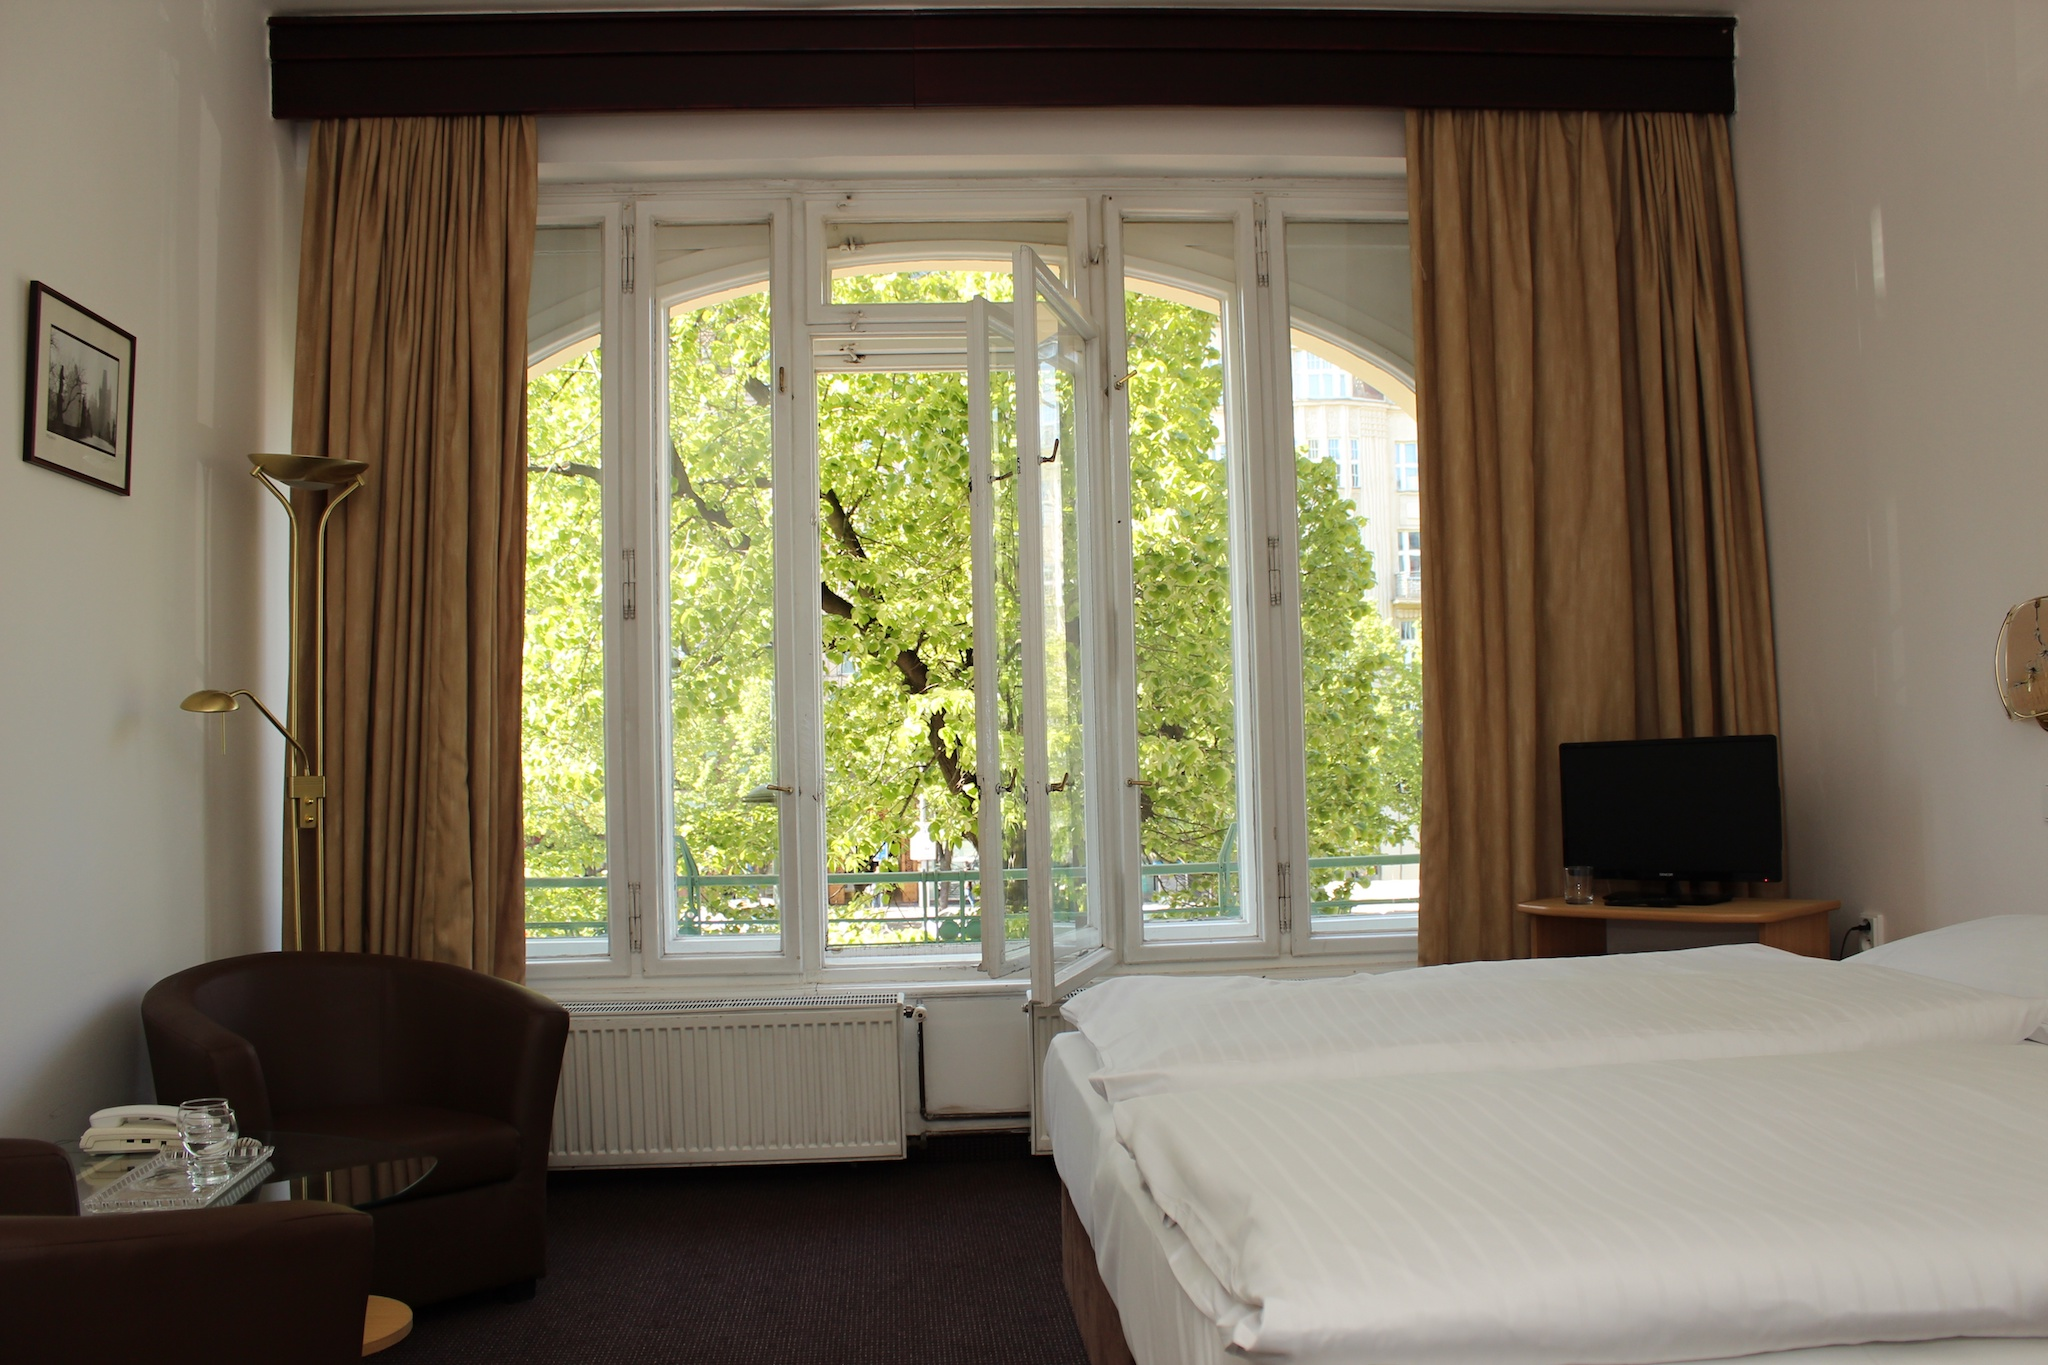 Hotel Meran | Prague 1 | Photos 28